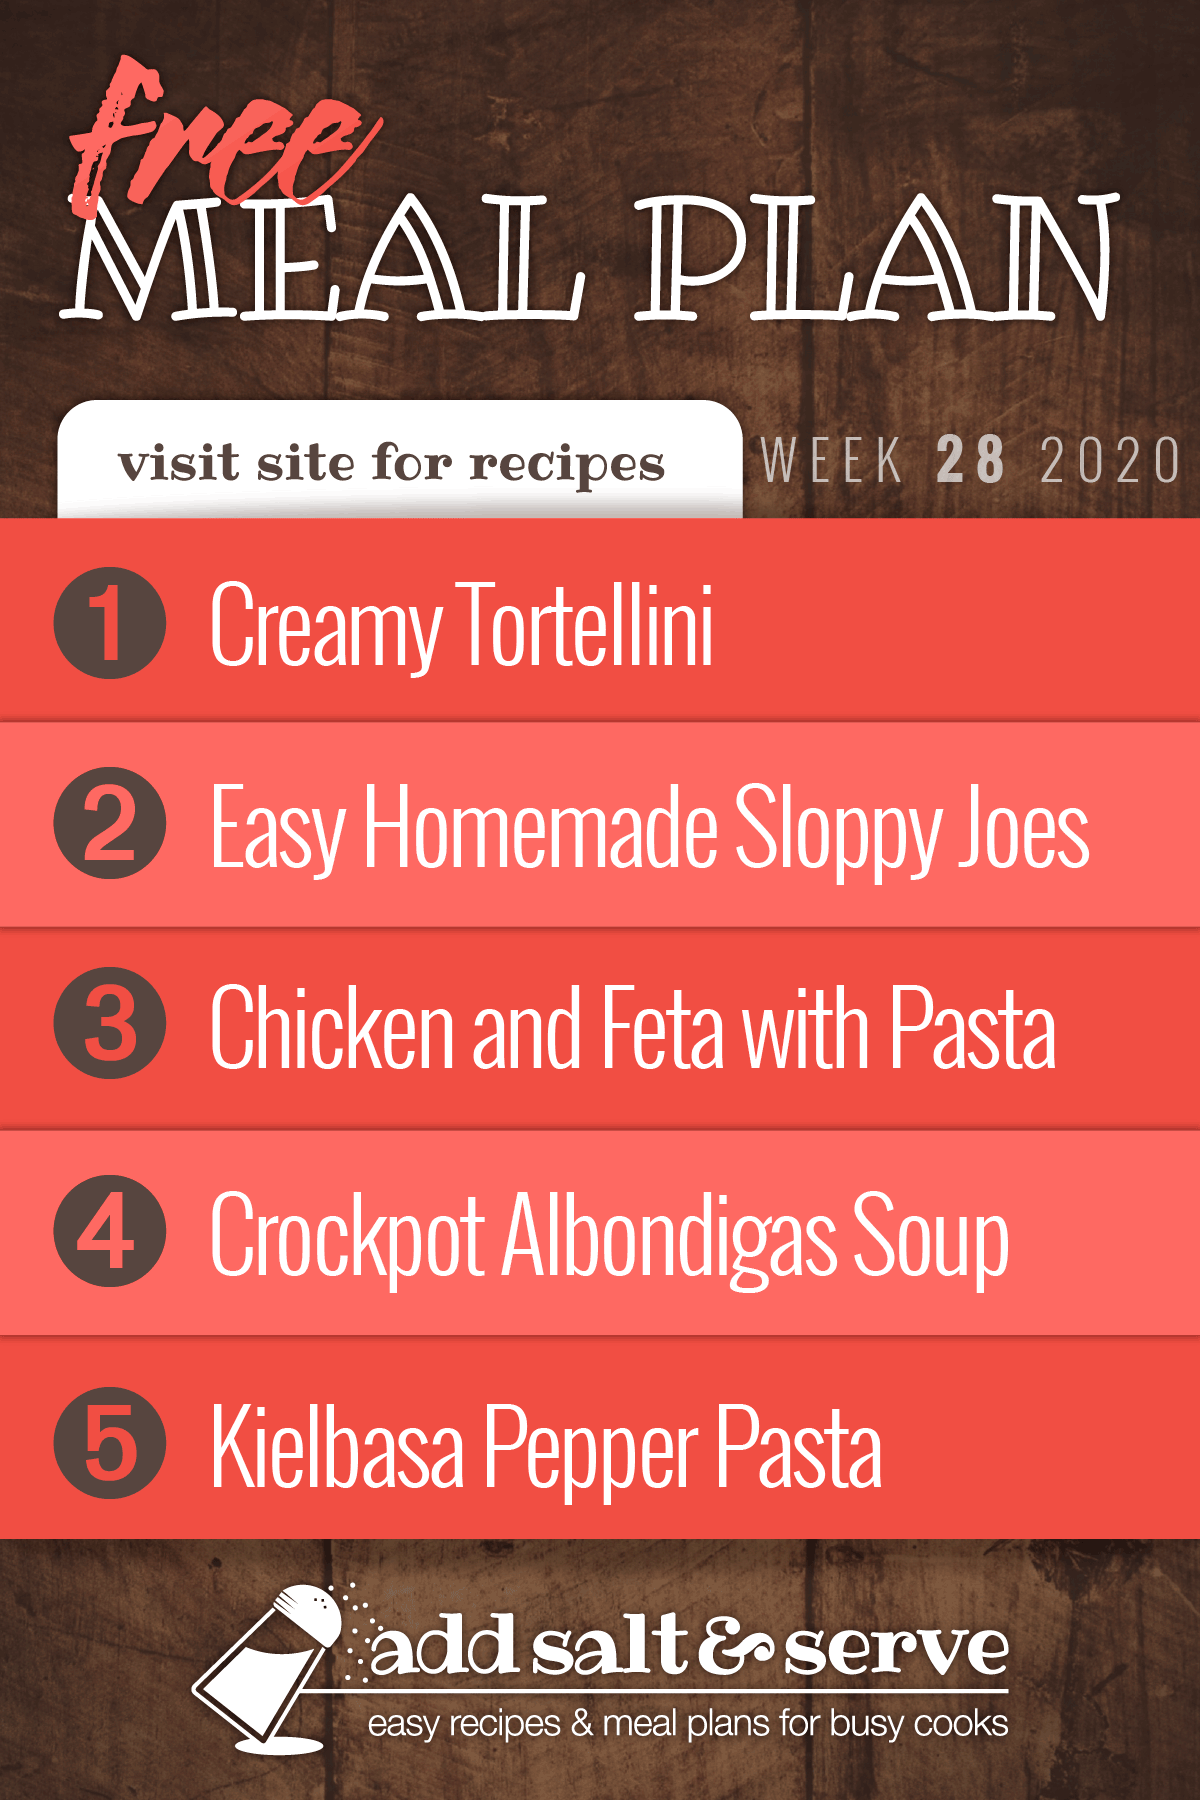 Free Meal Plan for Week 28 2020: Creamy Tortellini, Easy Homemade Sloppy Joes, Chicken and Feta with Bow Tie Pasta, Crockpot Albondigas Soup, Kielbasa Pepper Pasta